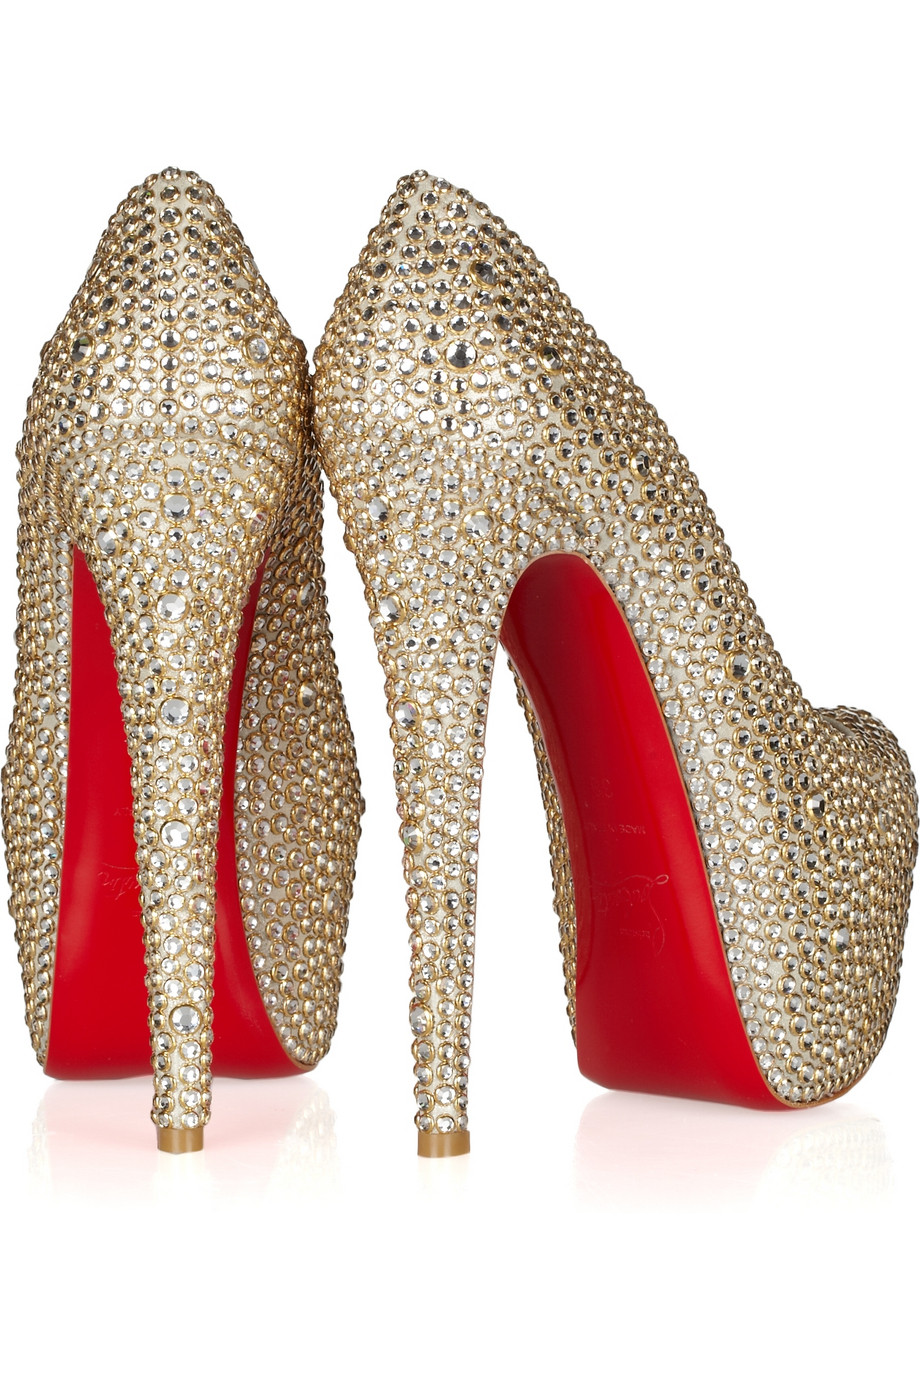 5ea449edc42 red bottom heels pumps all red christian louboutin